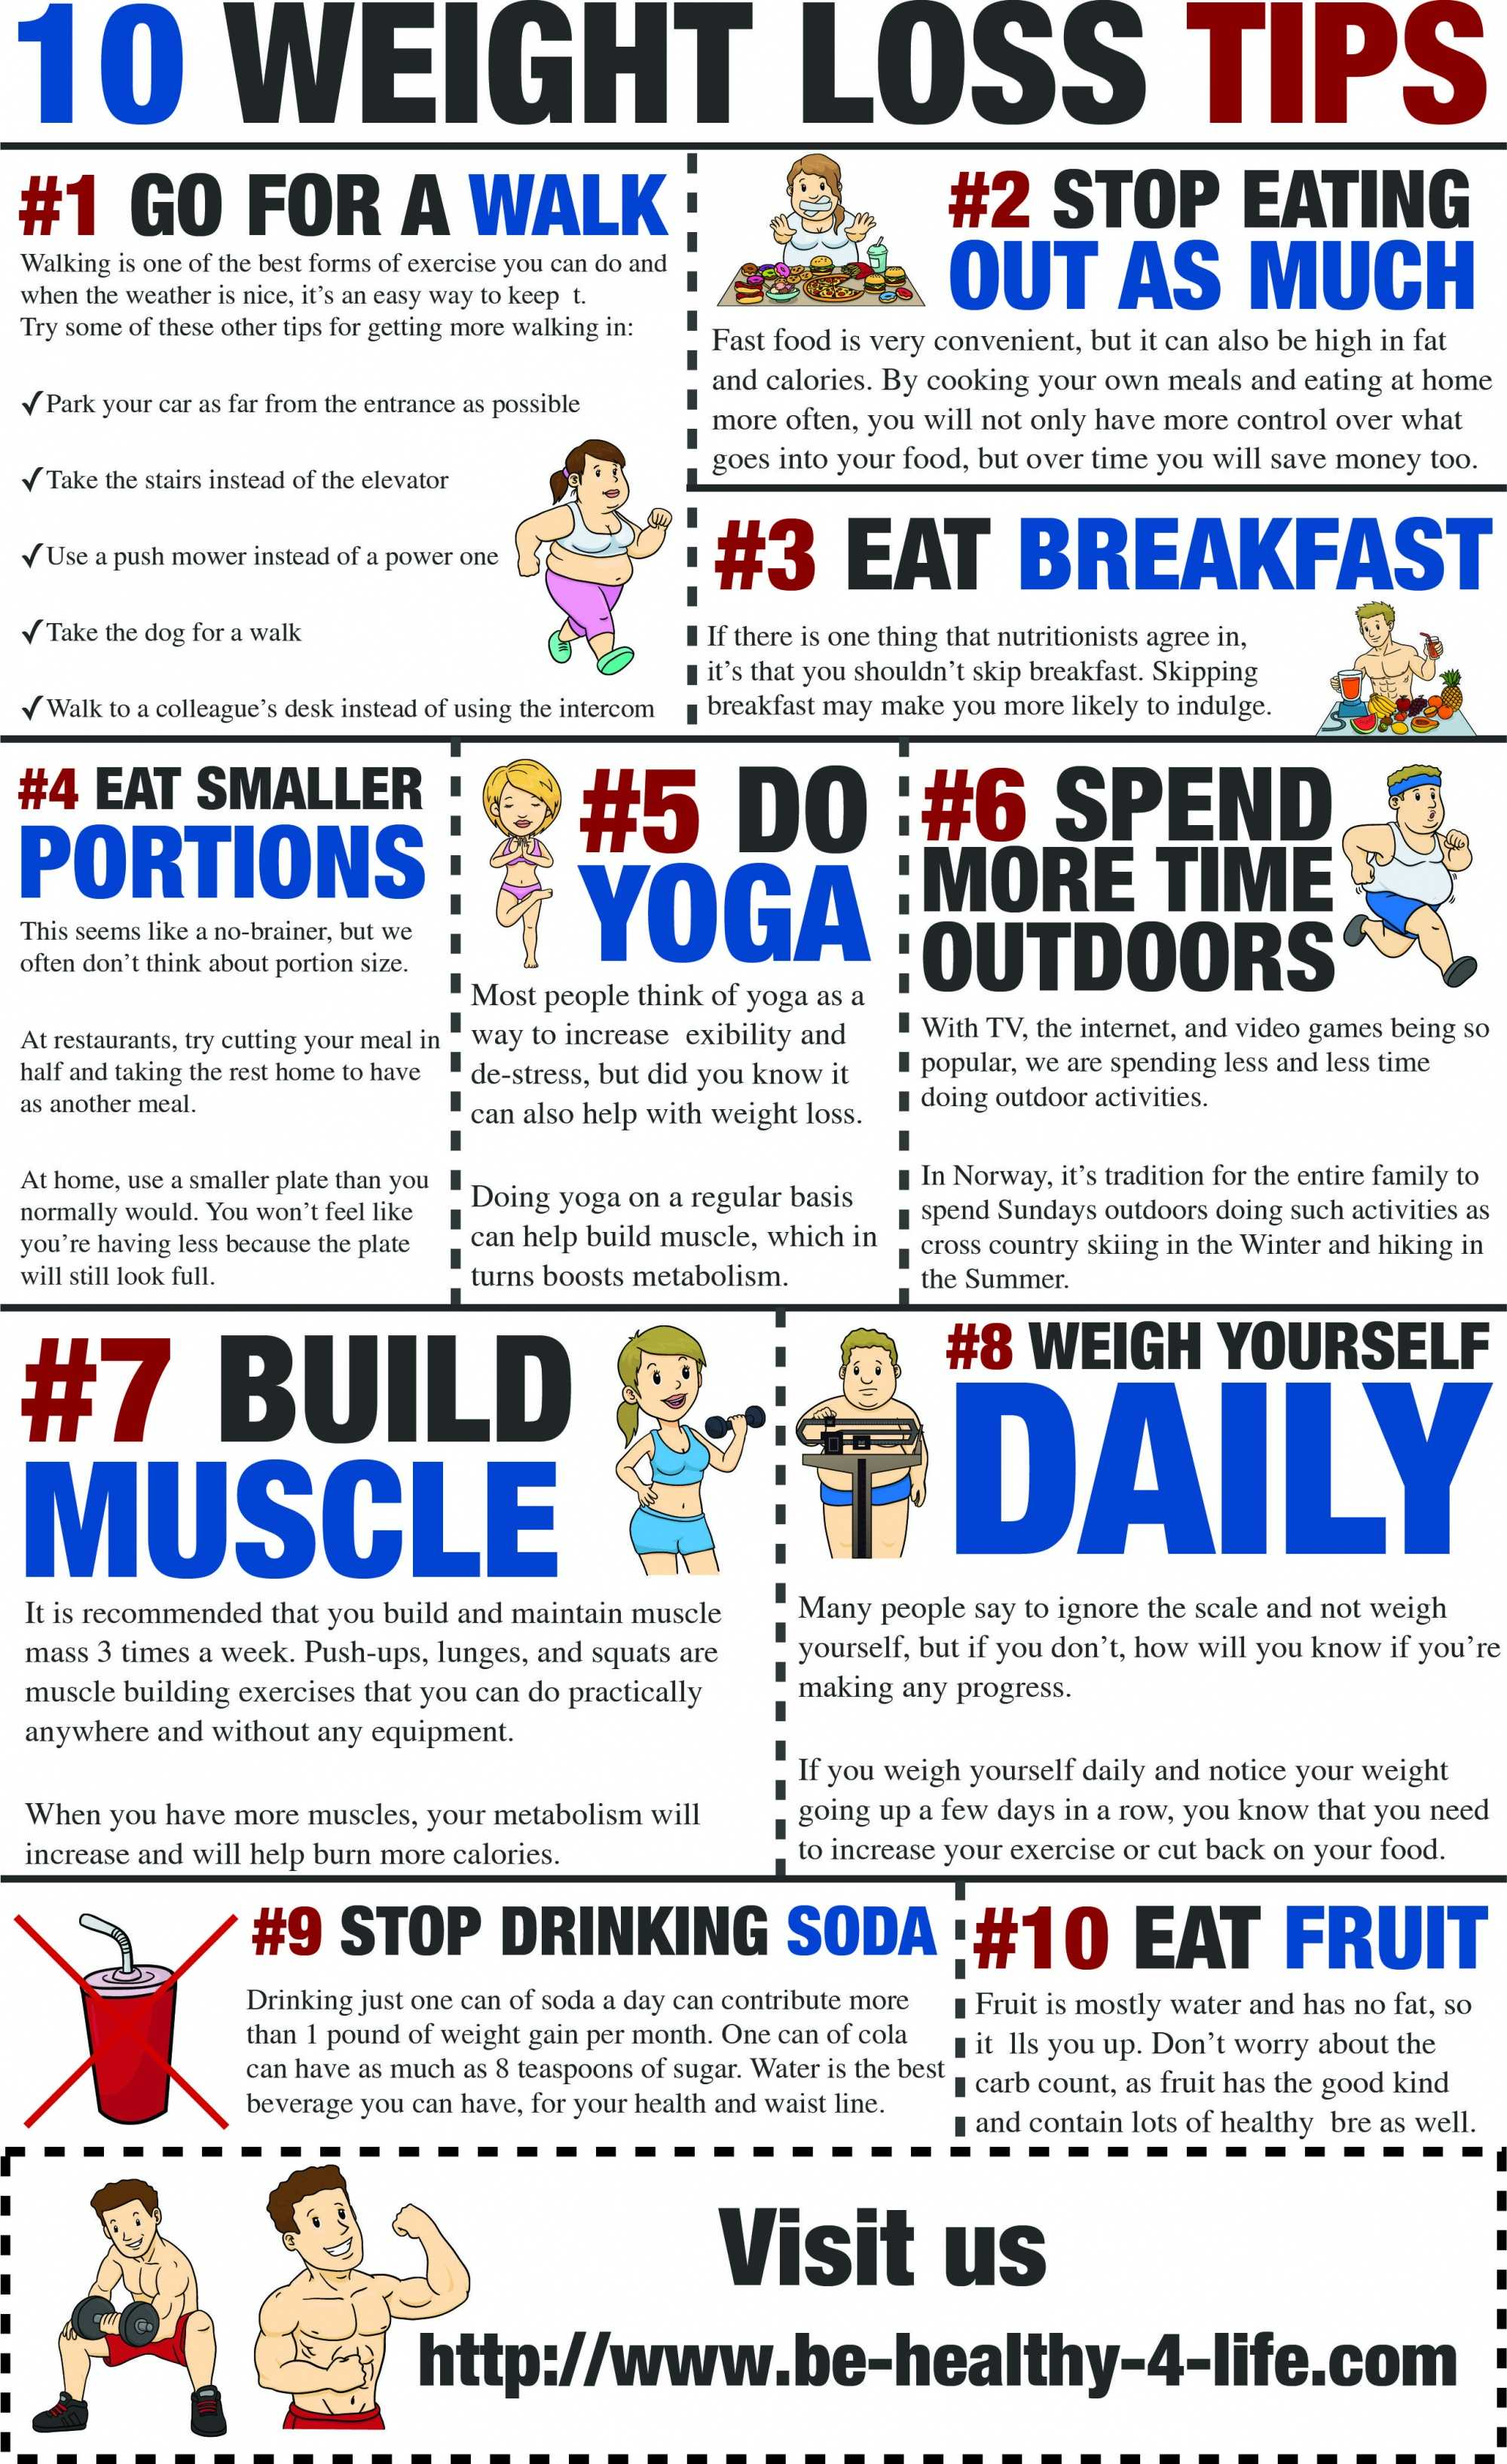 10 More Weight Loss Tips